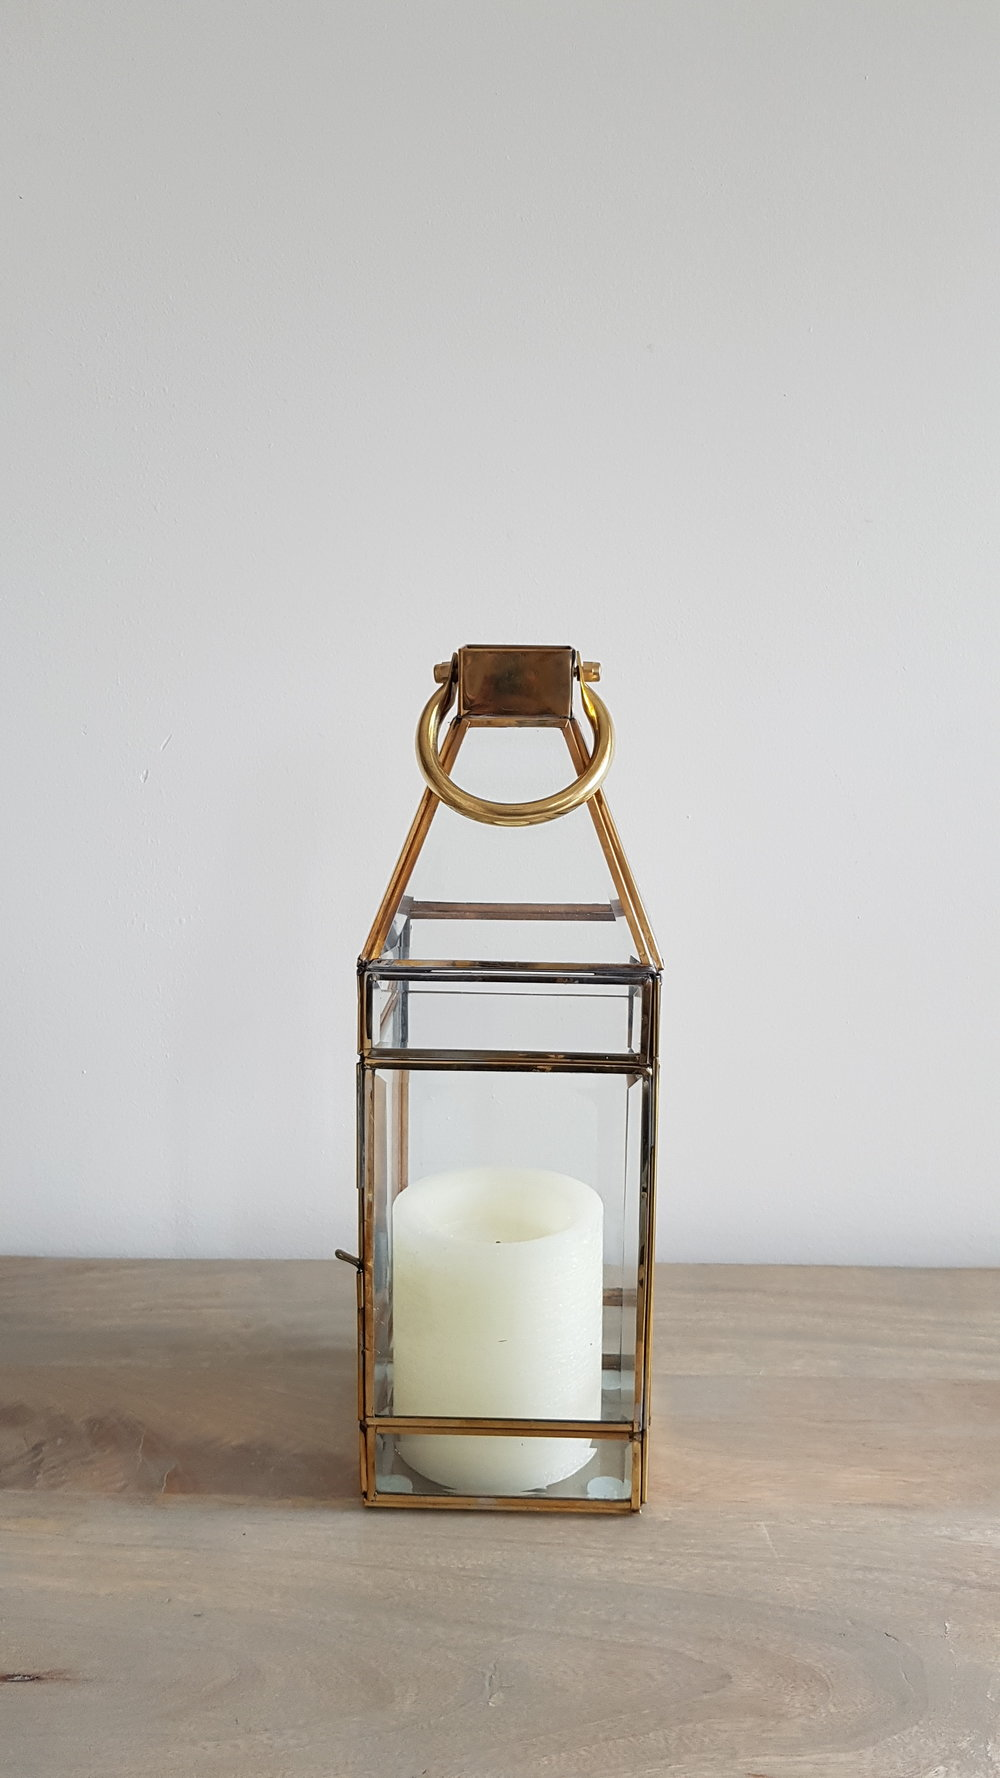 Gold Lantern - $20 each   Qty: 15 (candles not included)